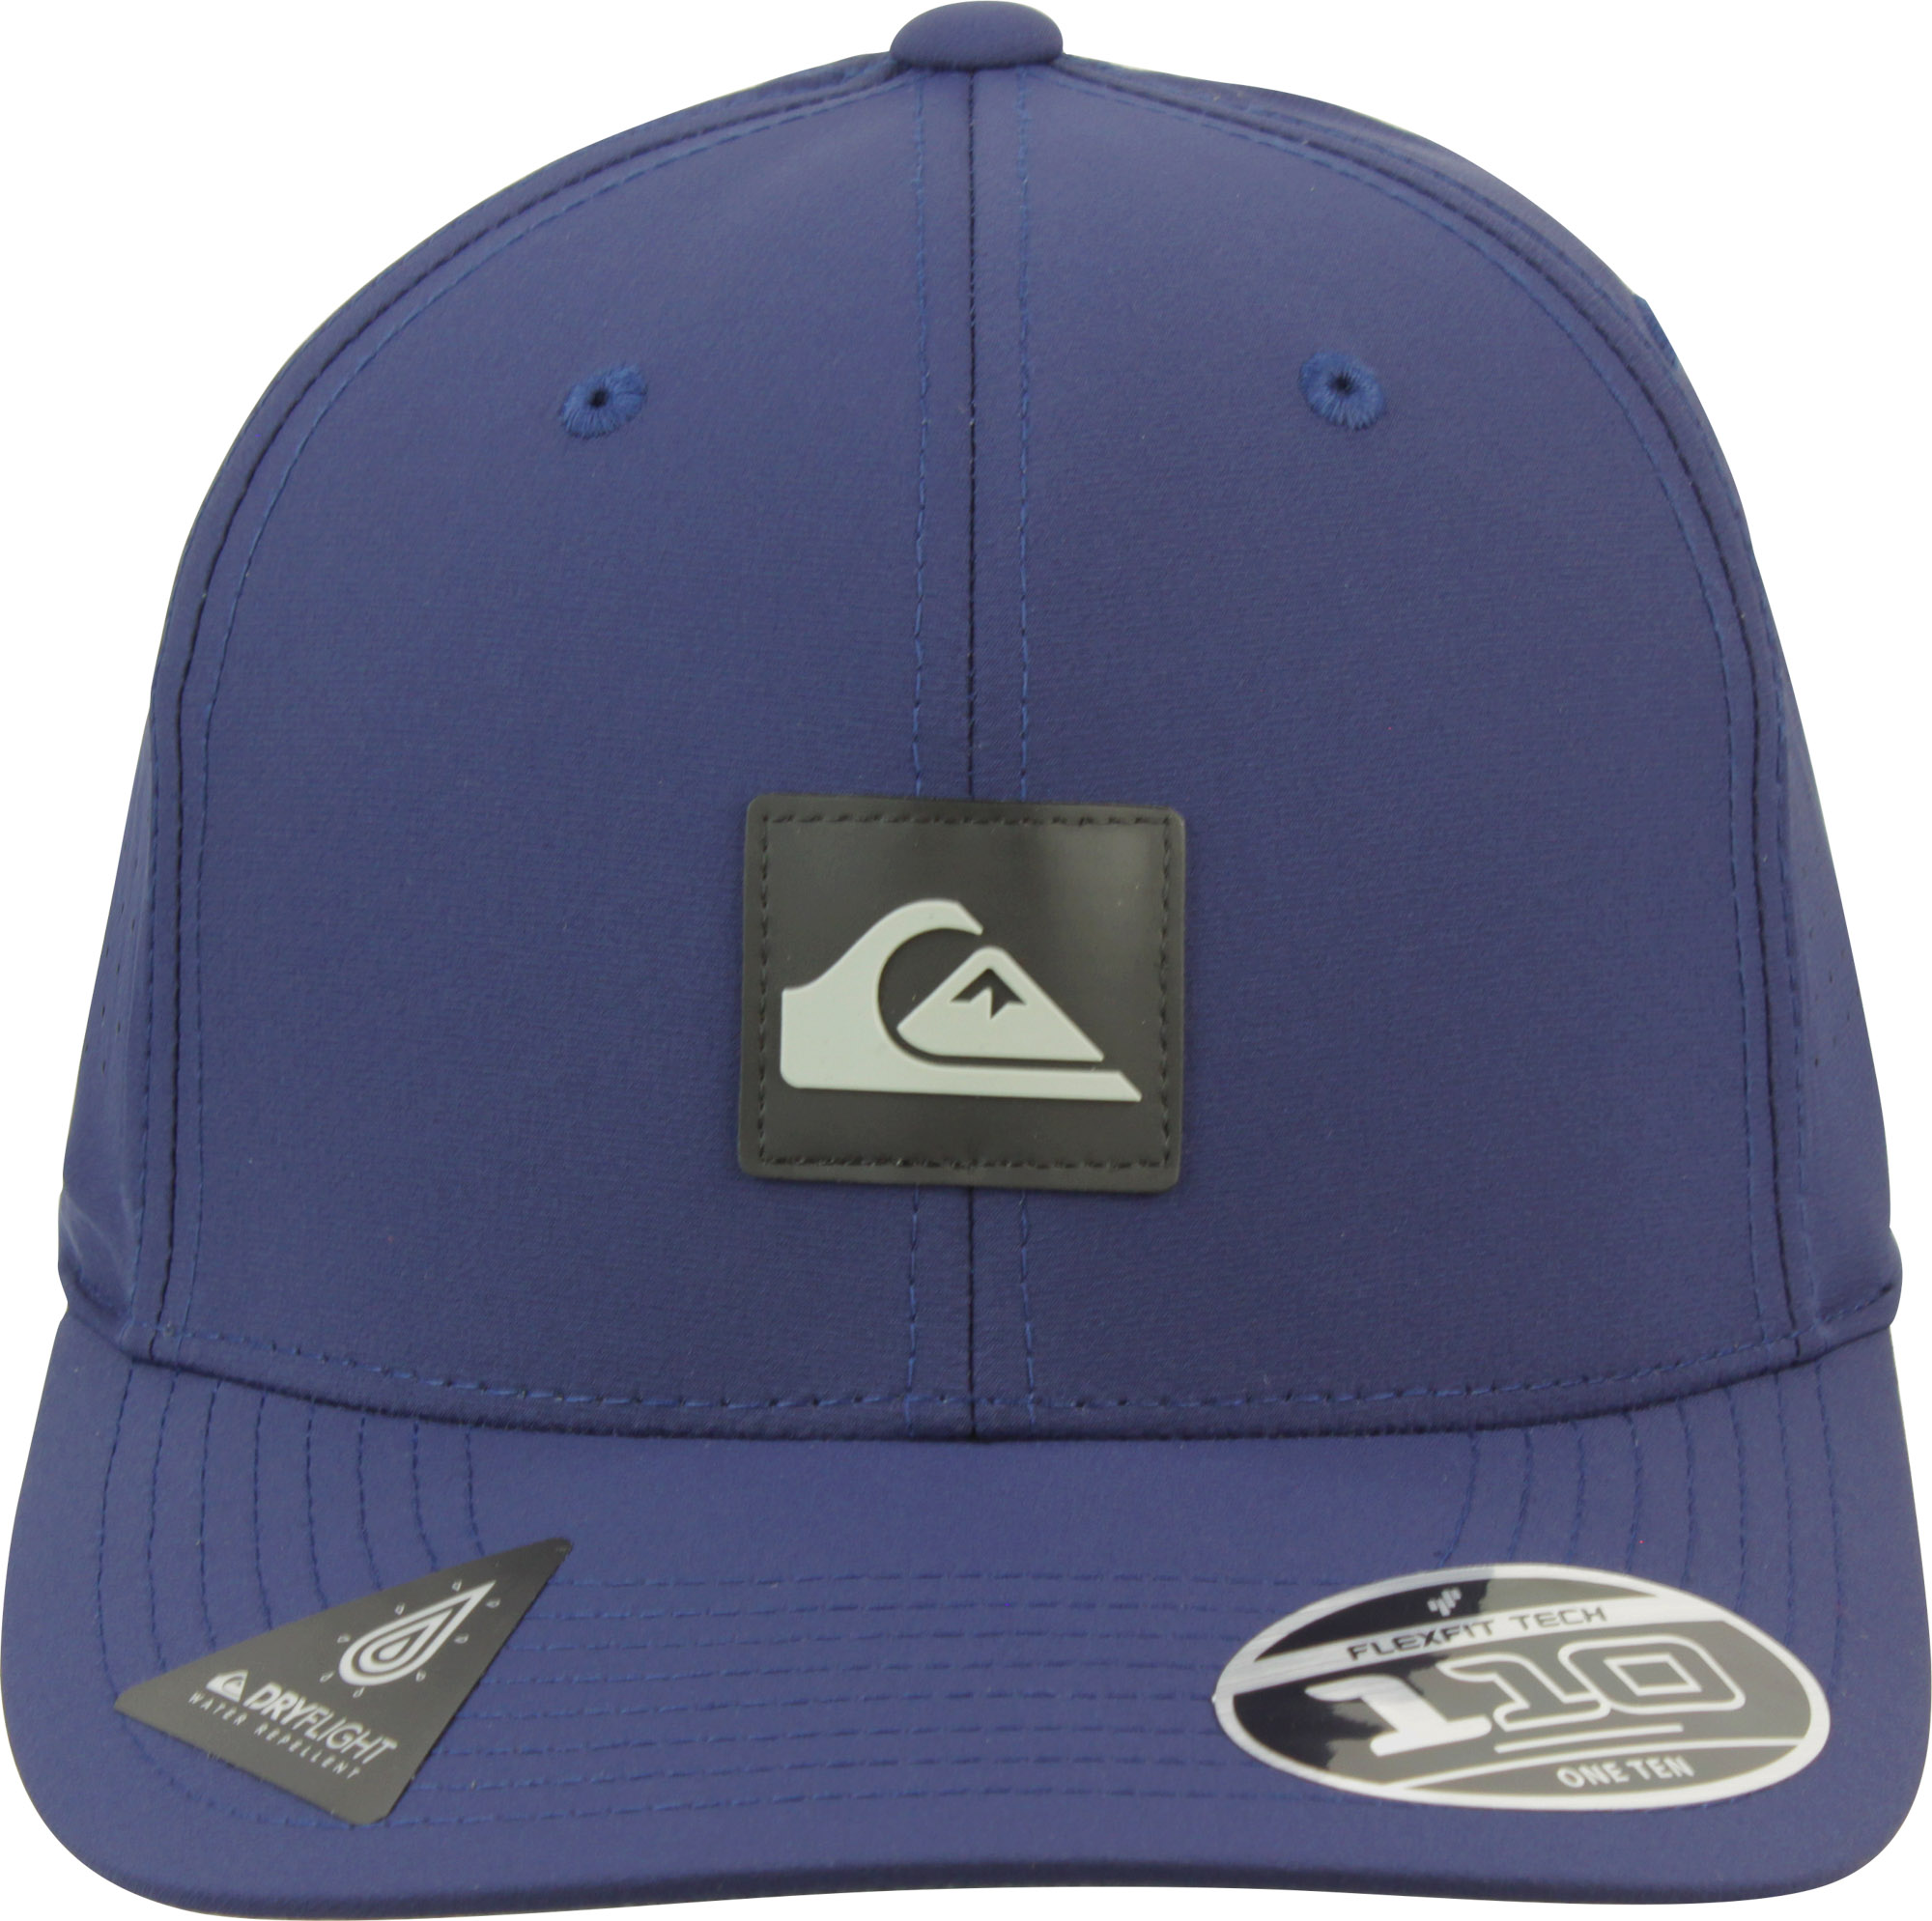 7d9cb109bb1 Quiksilver Mens Adapted 110 Amphibian Strapback Adjustable Hat ...